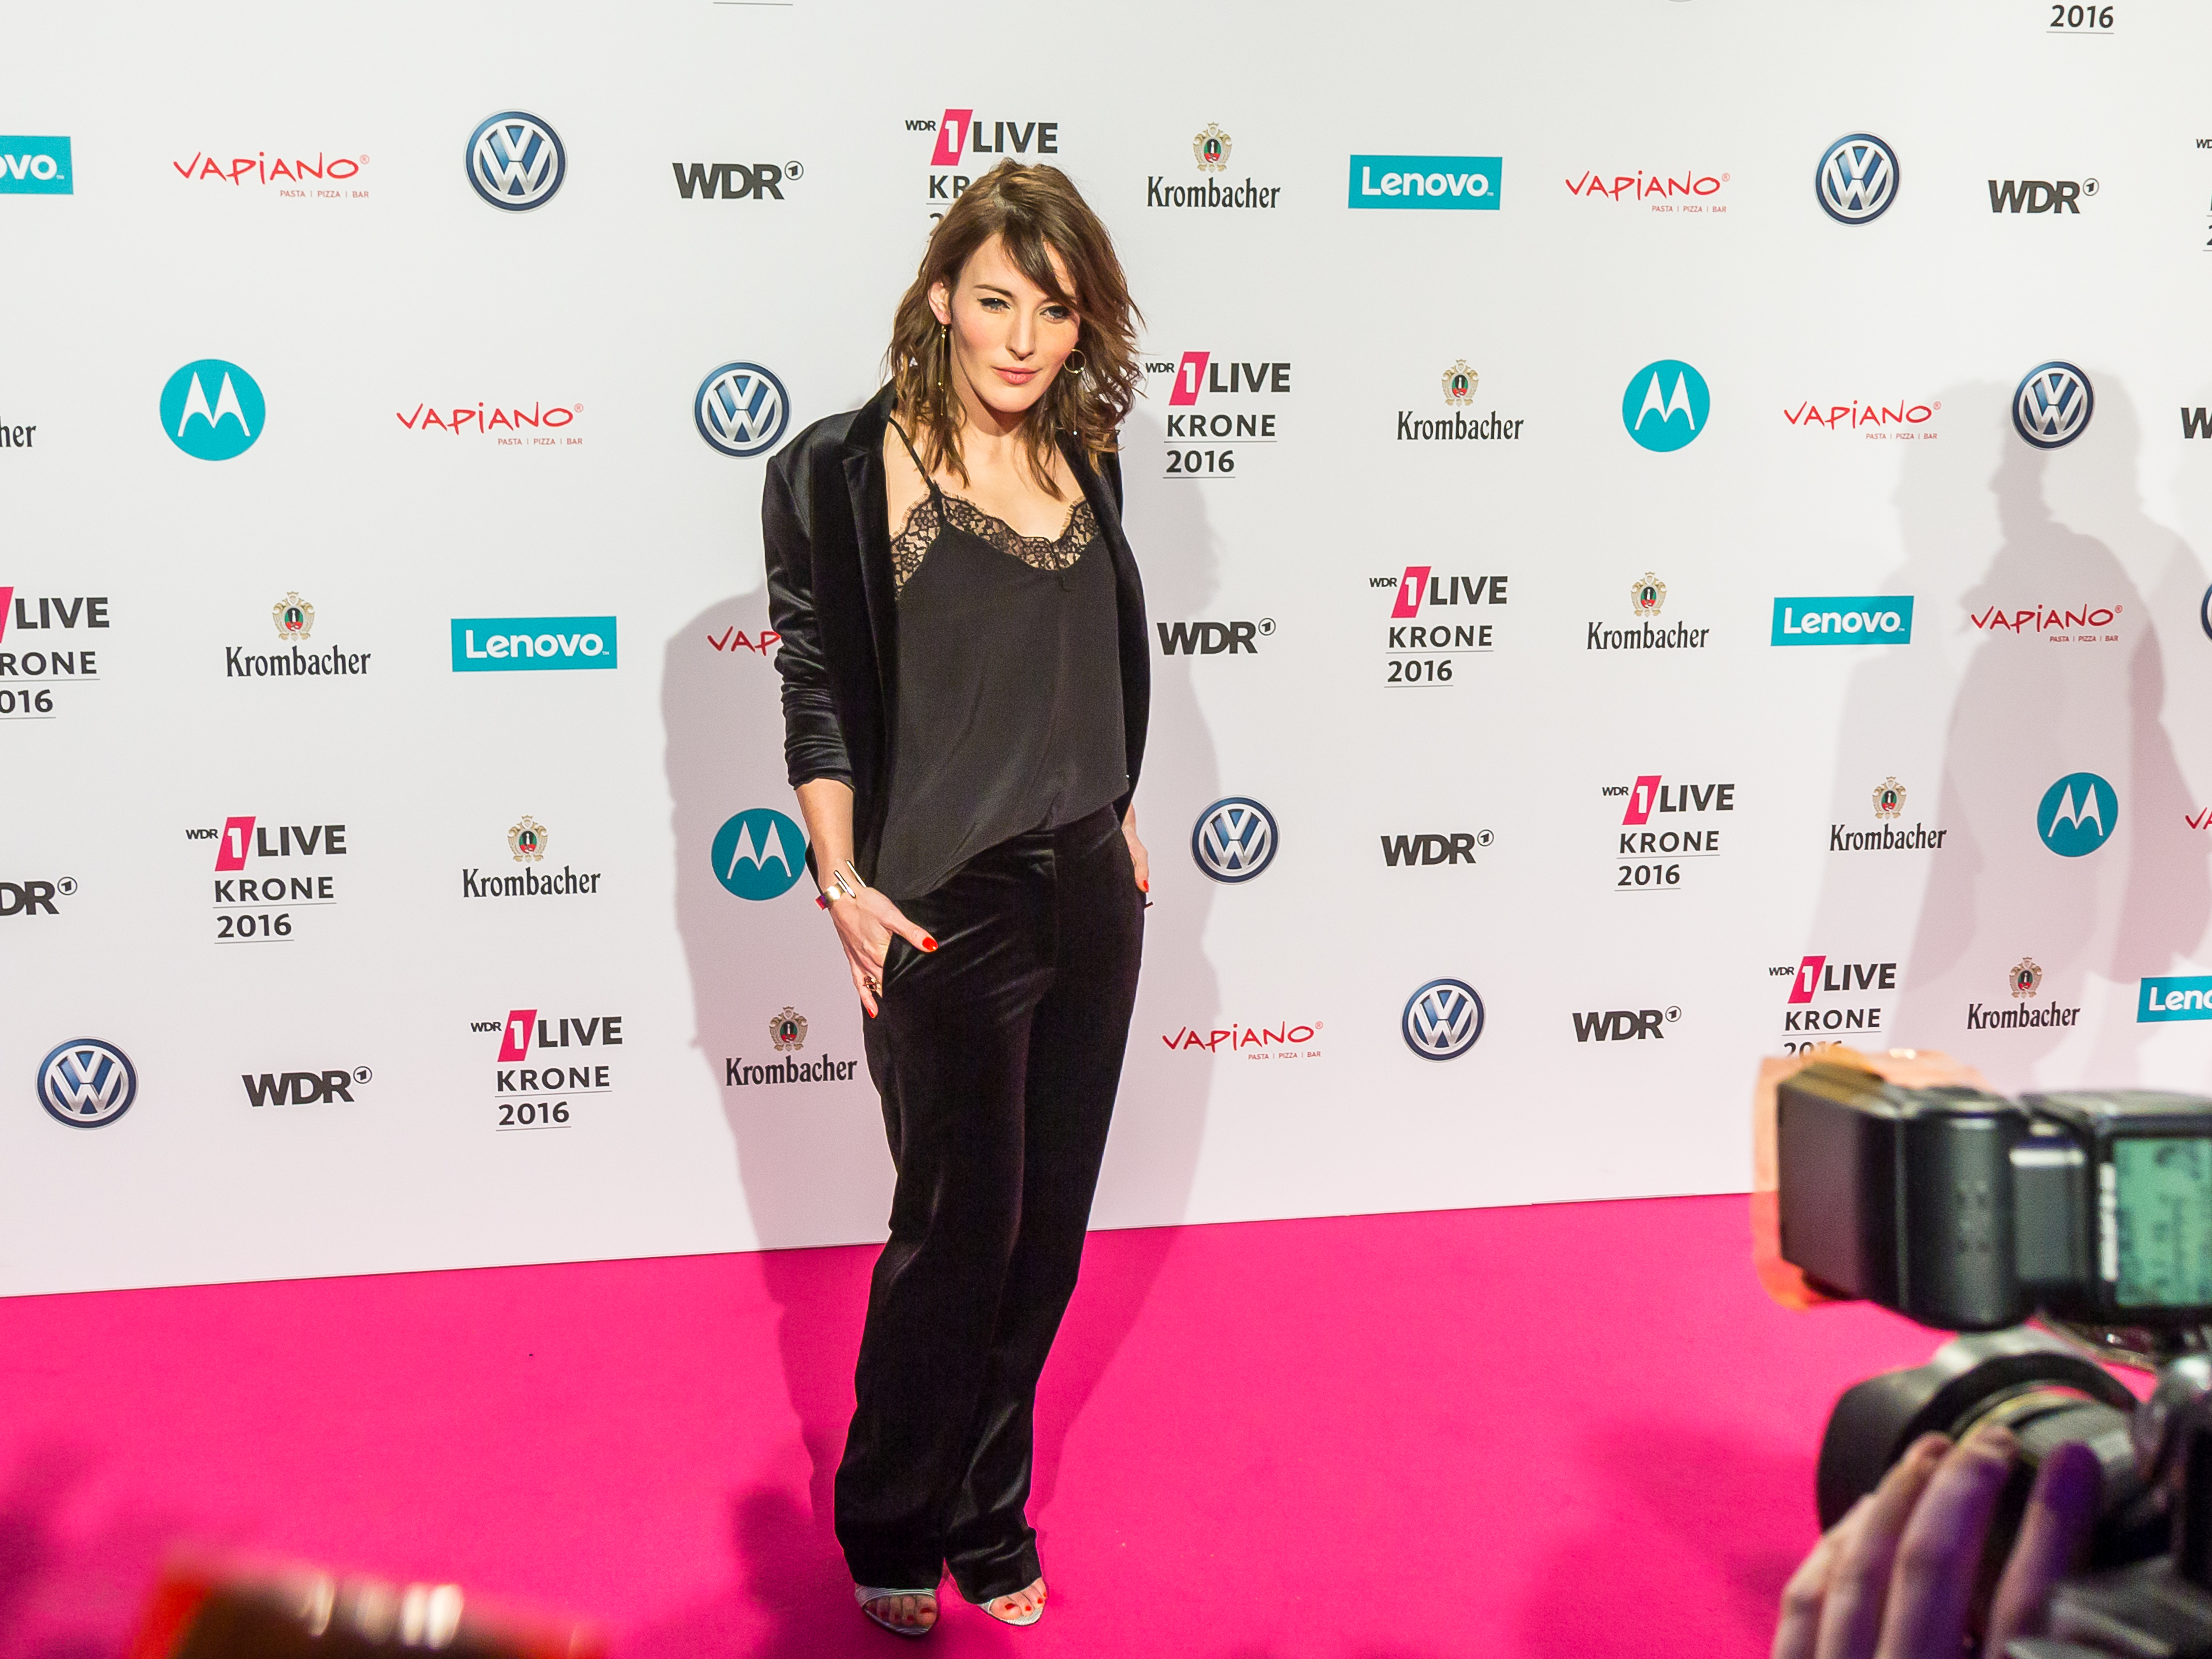 Roter Teppich Wallpaper File 1live Krone 2016 1700 Roter Teppich Jeannine Michaelsen